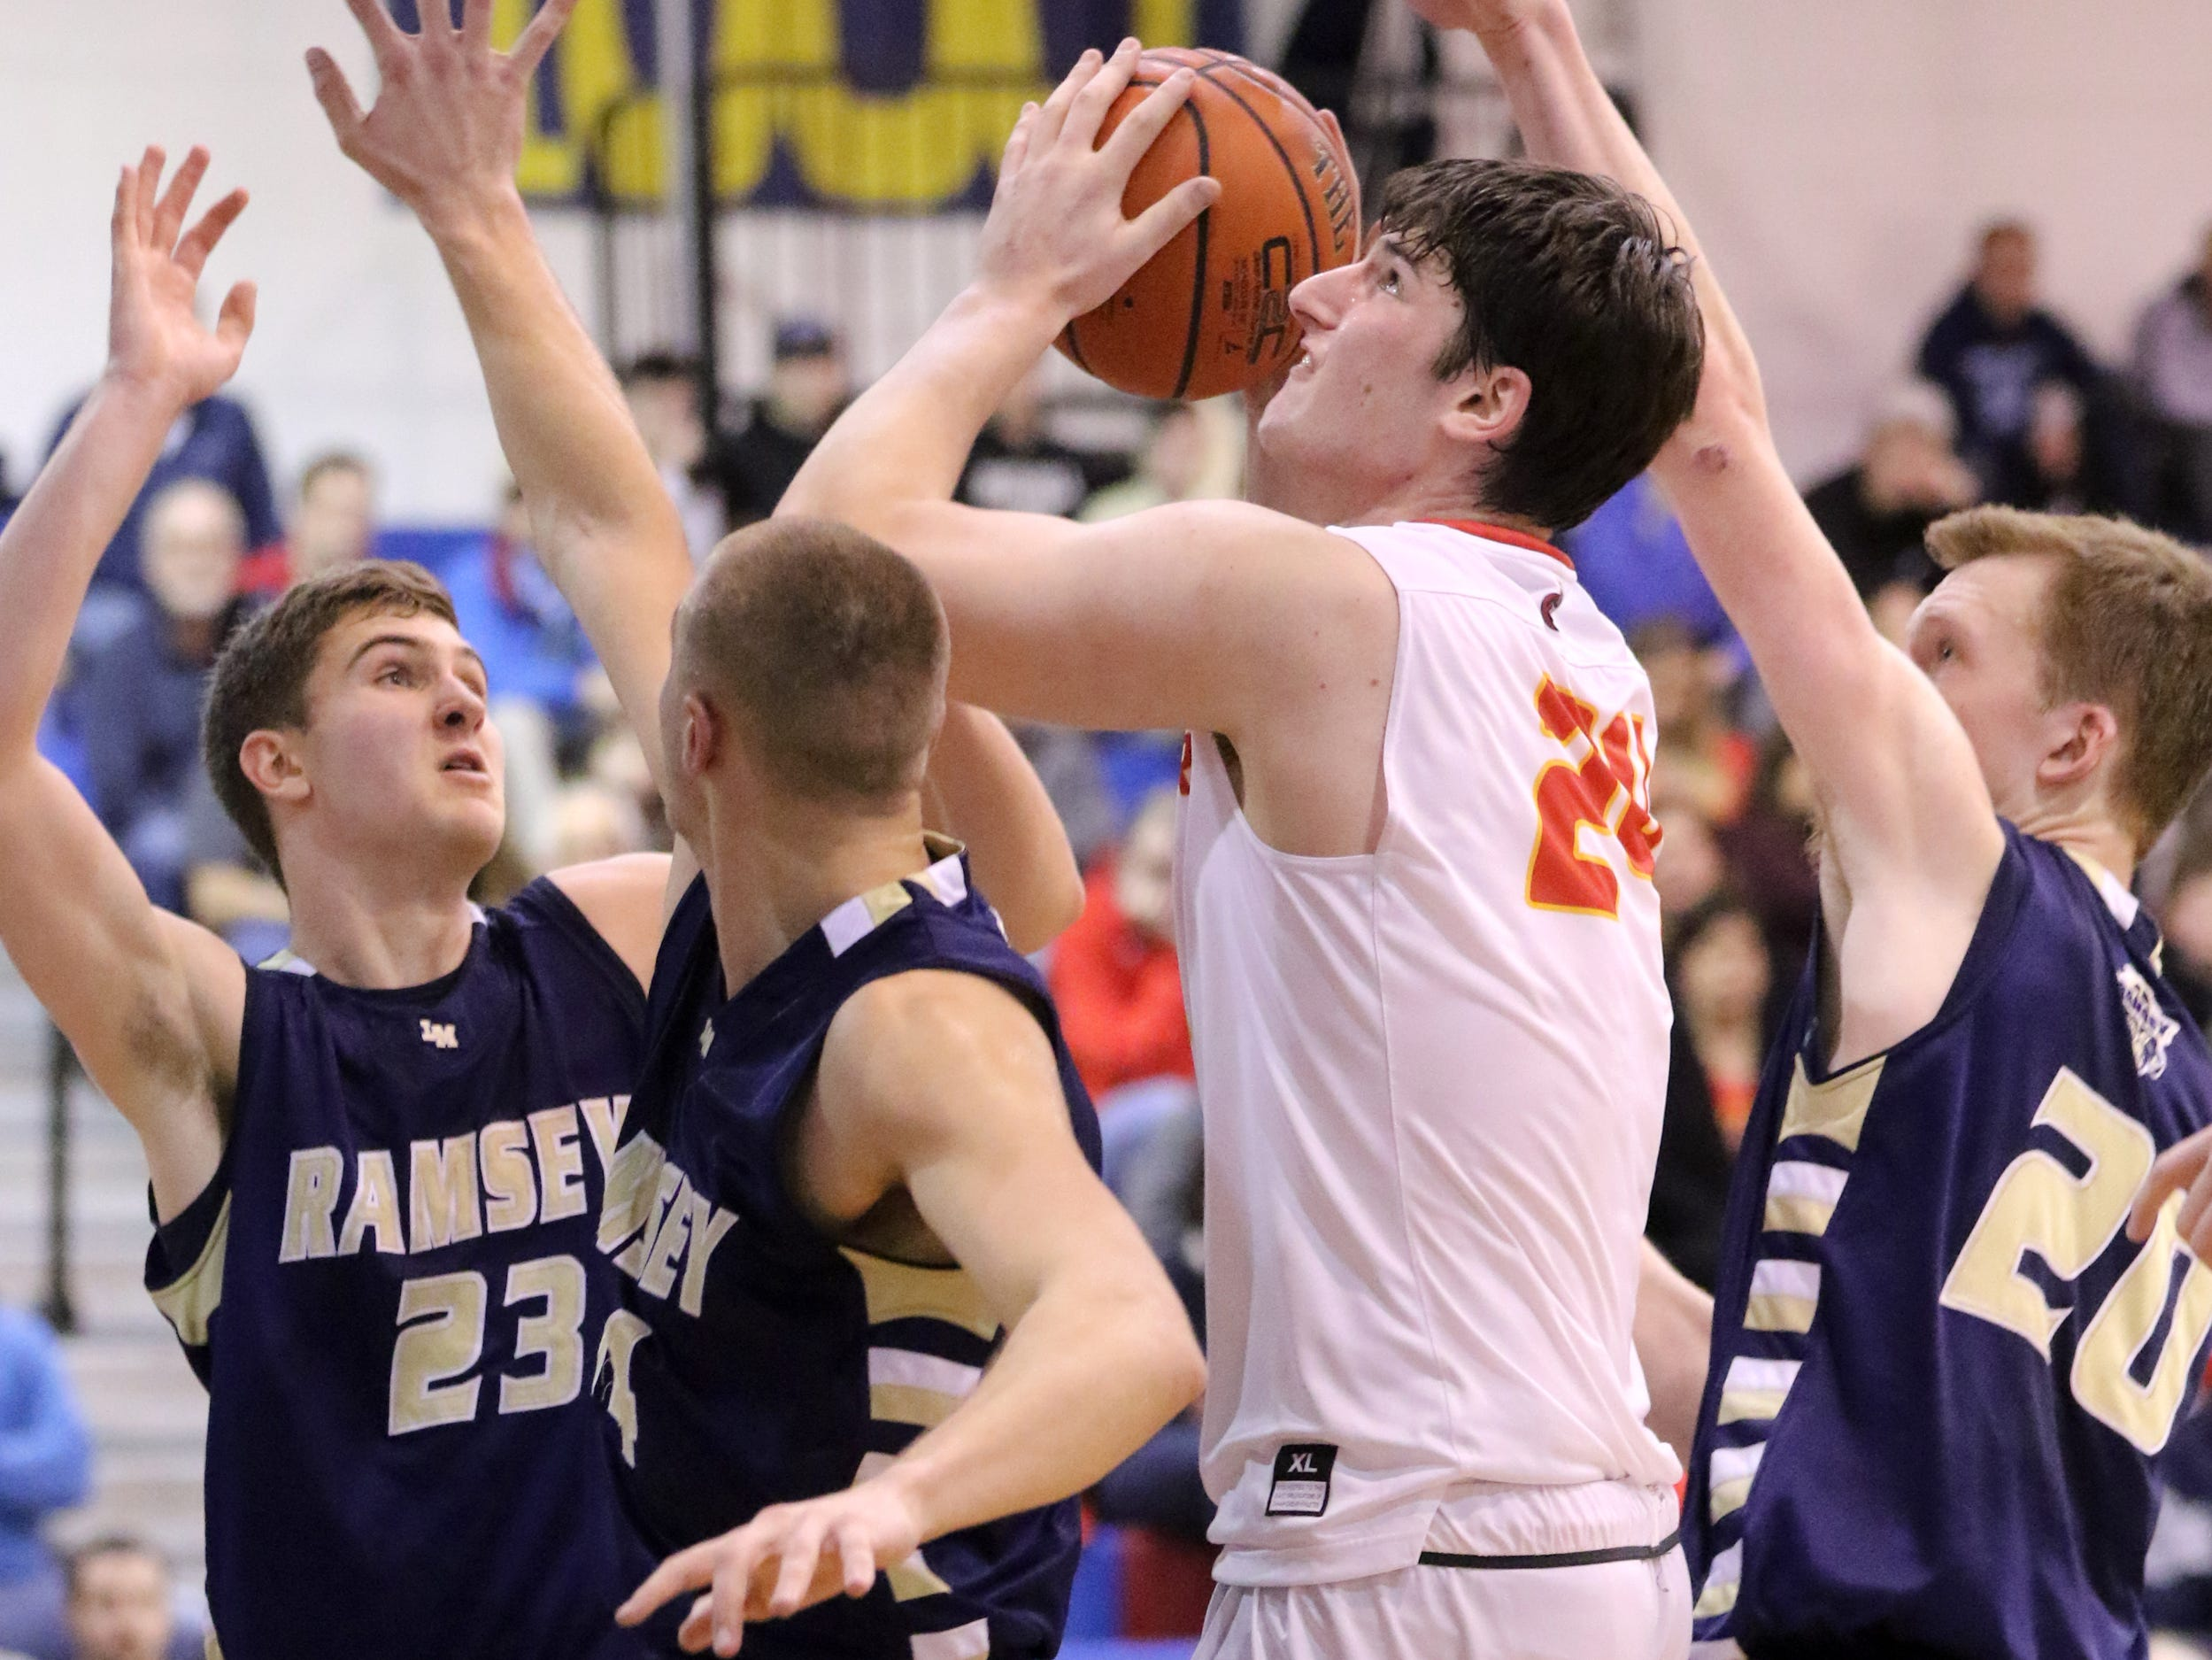 Matt Zona, of Bergen Catholic, eyes the hoop as he is surrounded by Ramsey defense.  Sunday, February 10, 2019